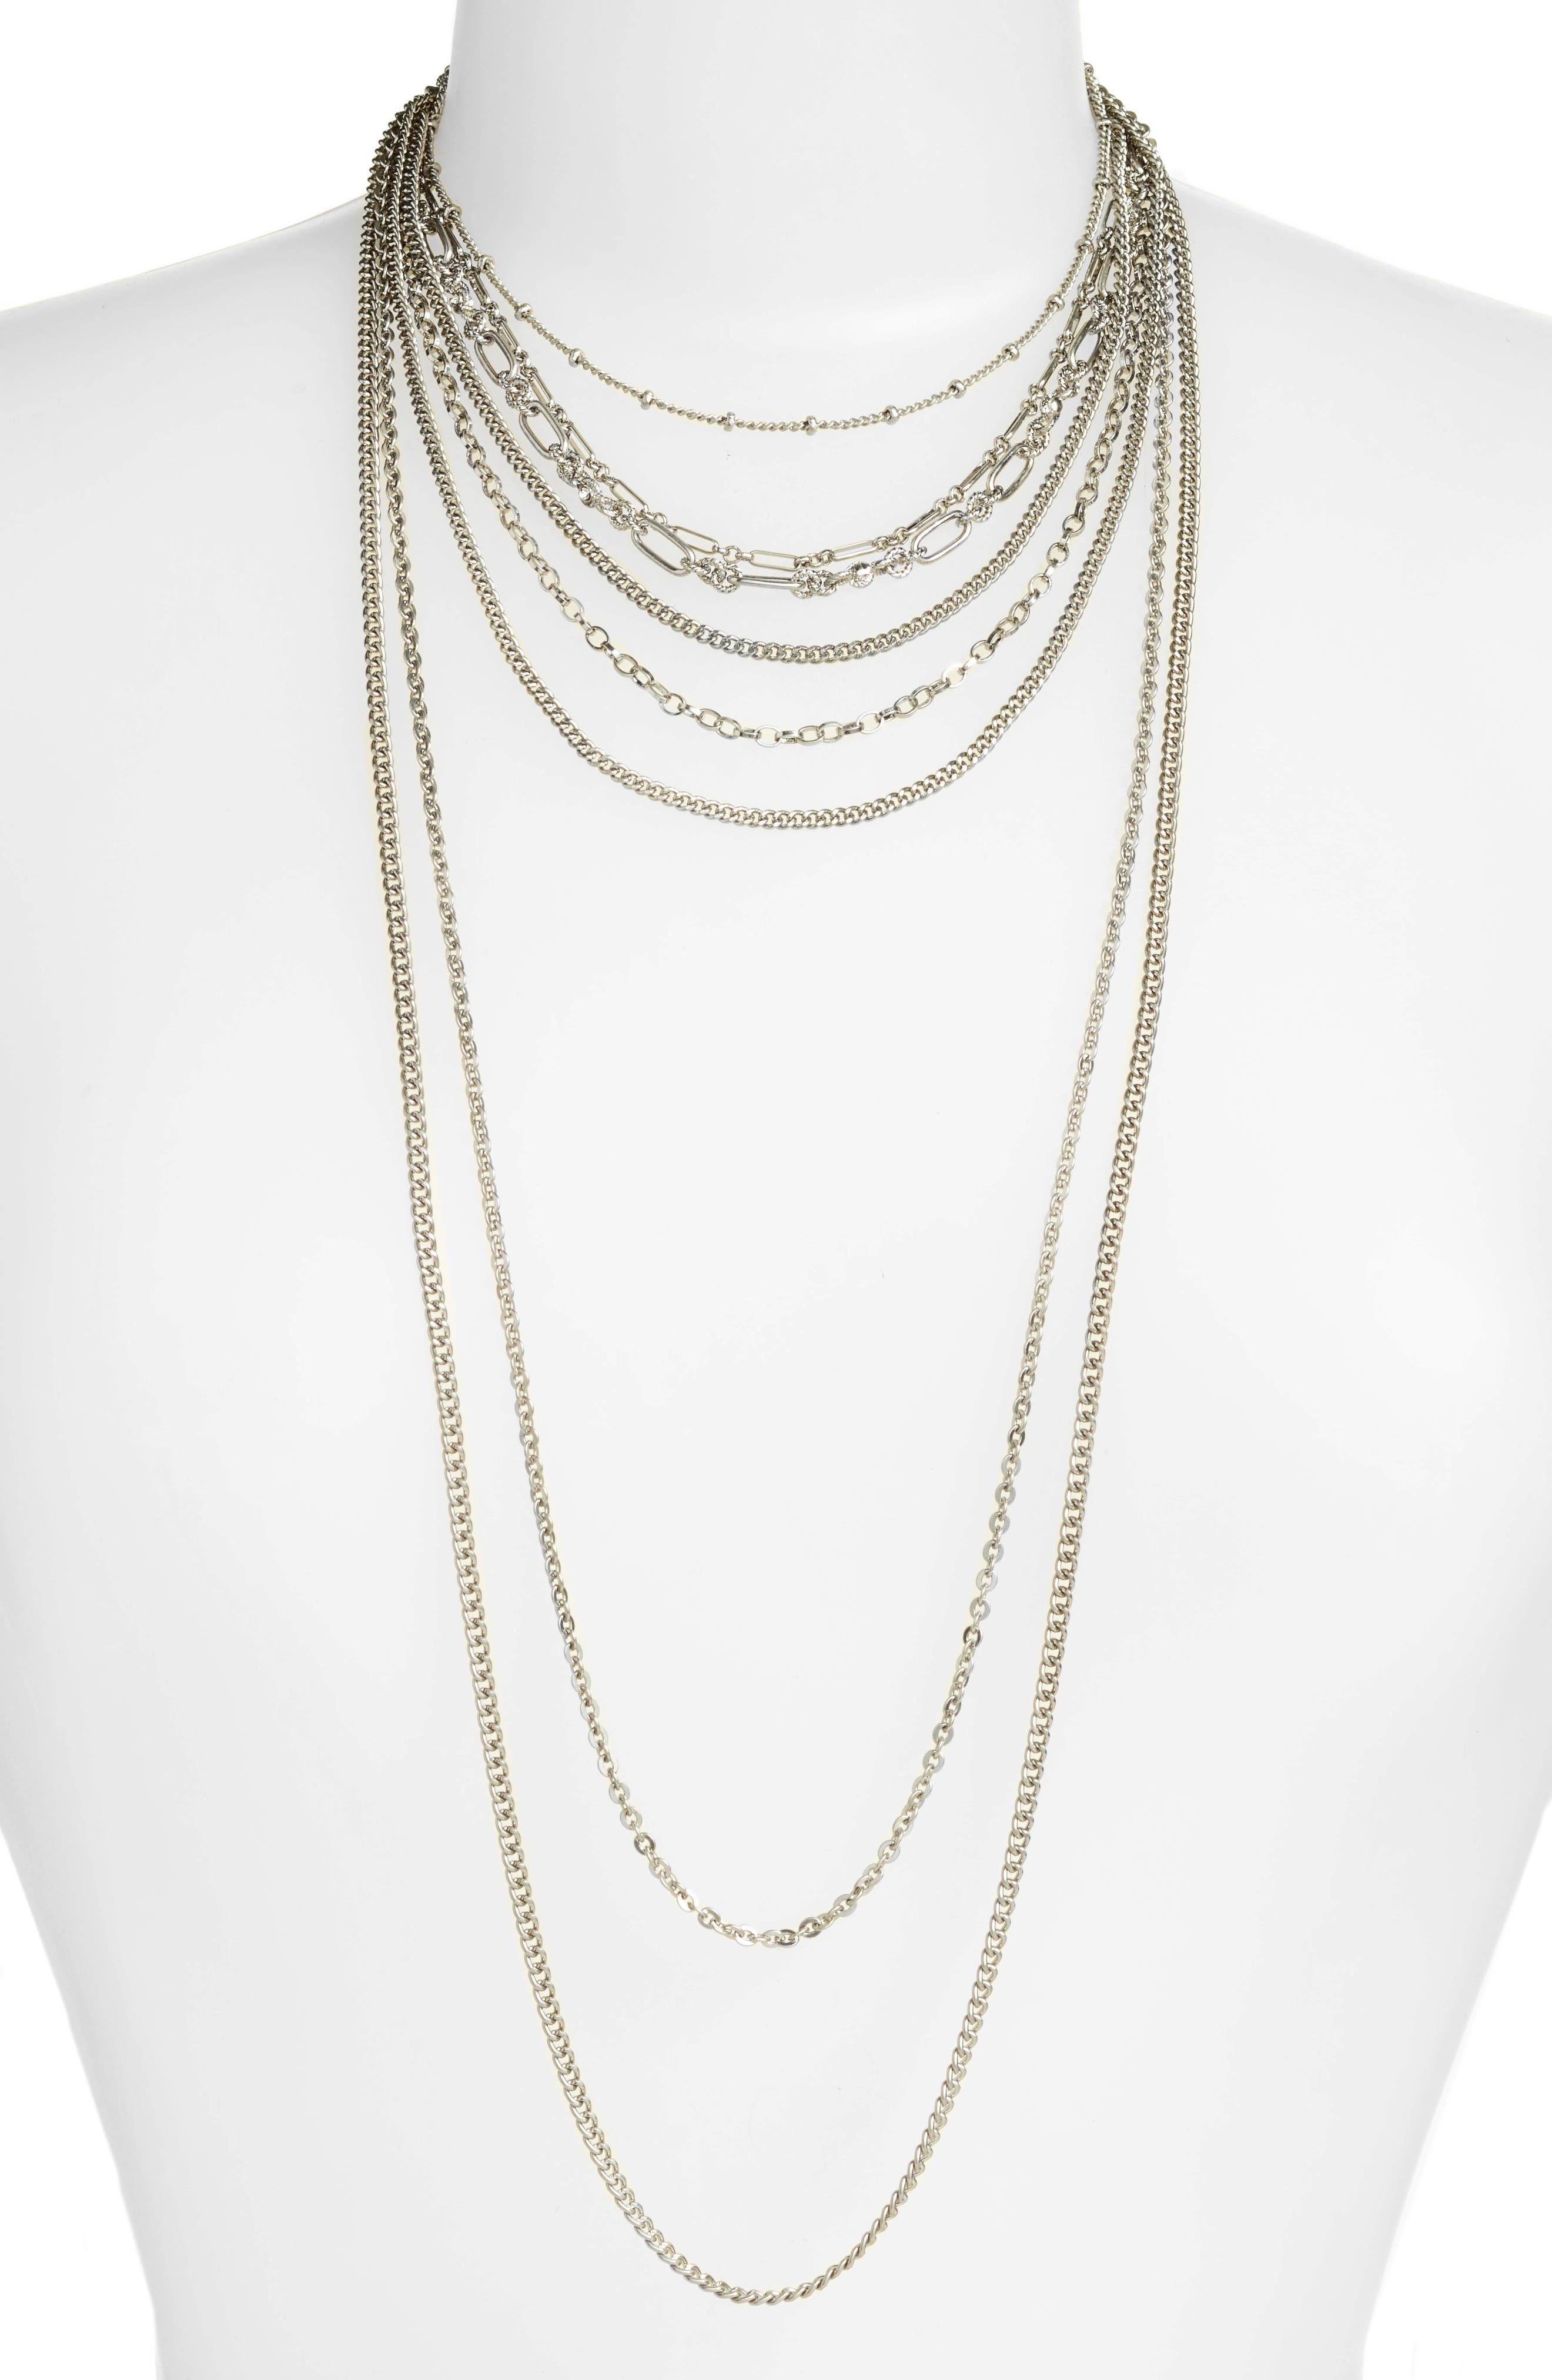 Multistrand Textured Chain Necklace,                             Main thumbnail 1, color,                             040